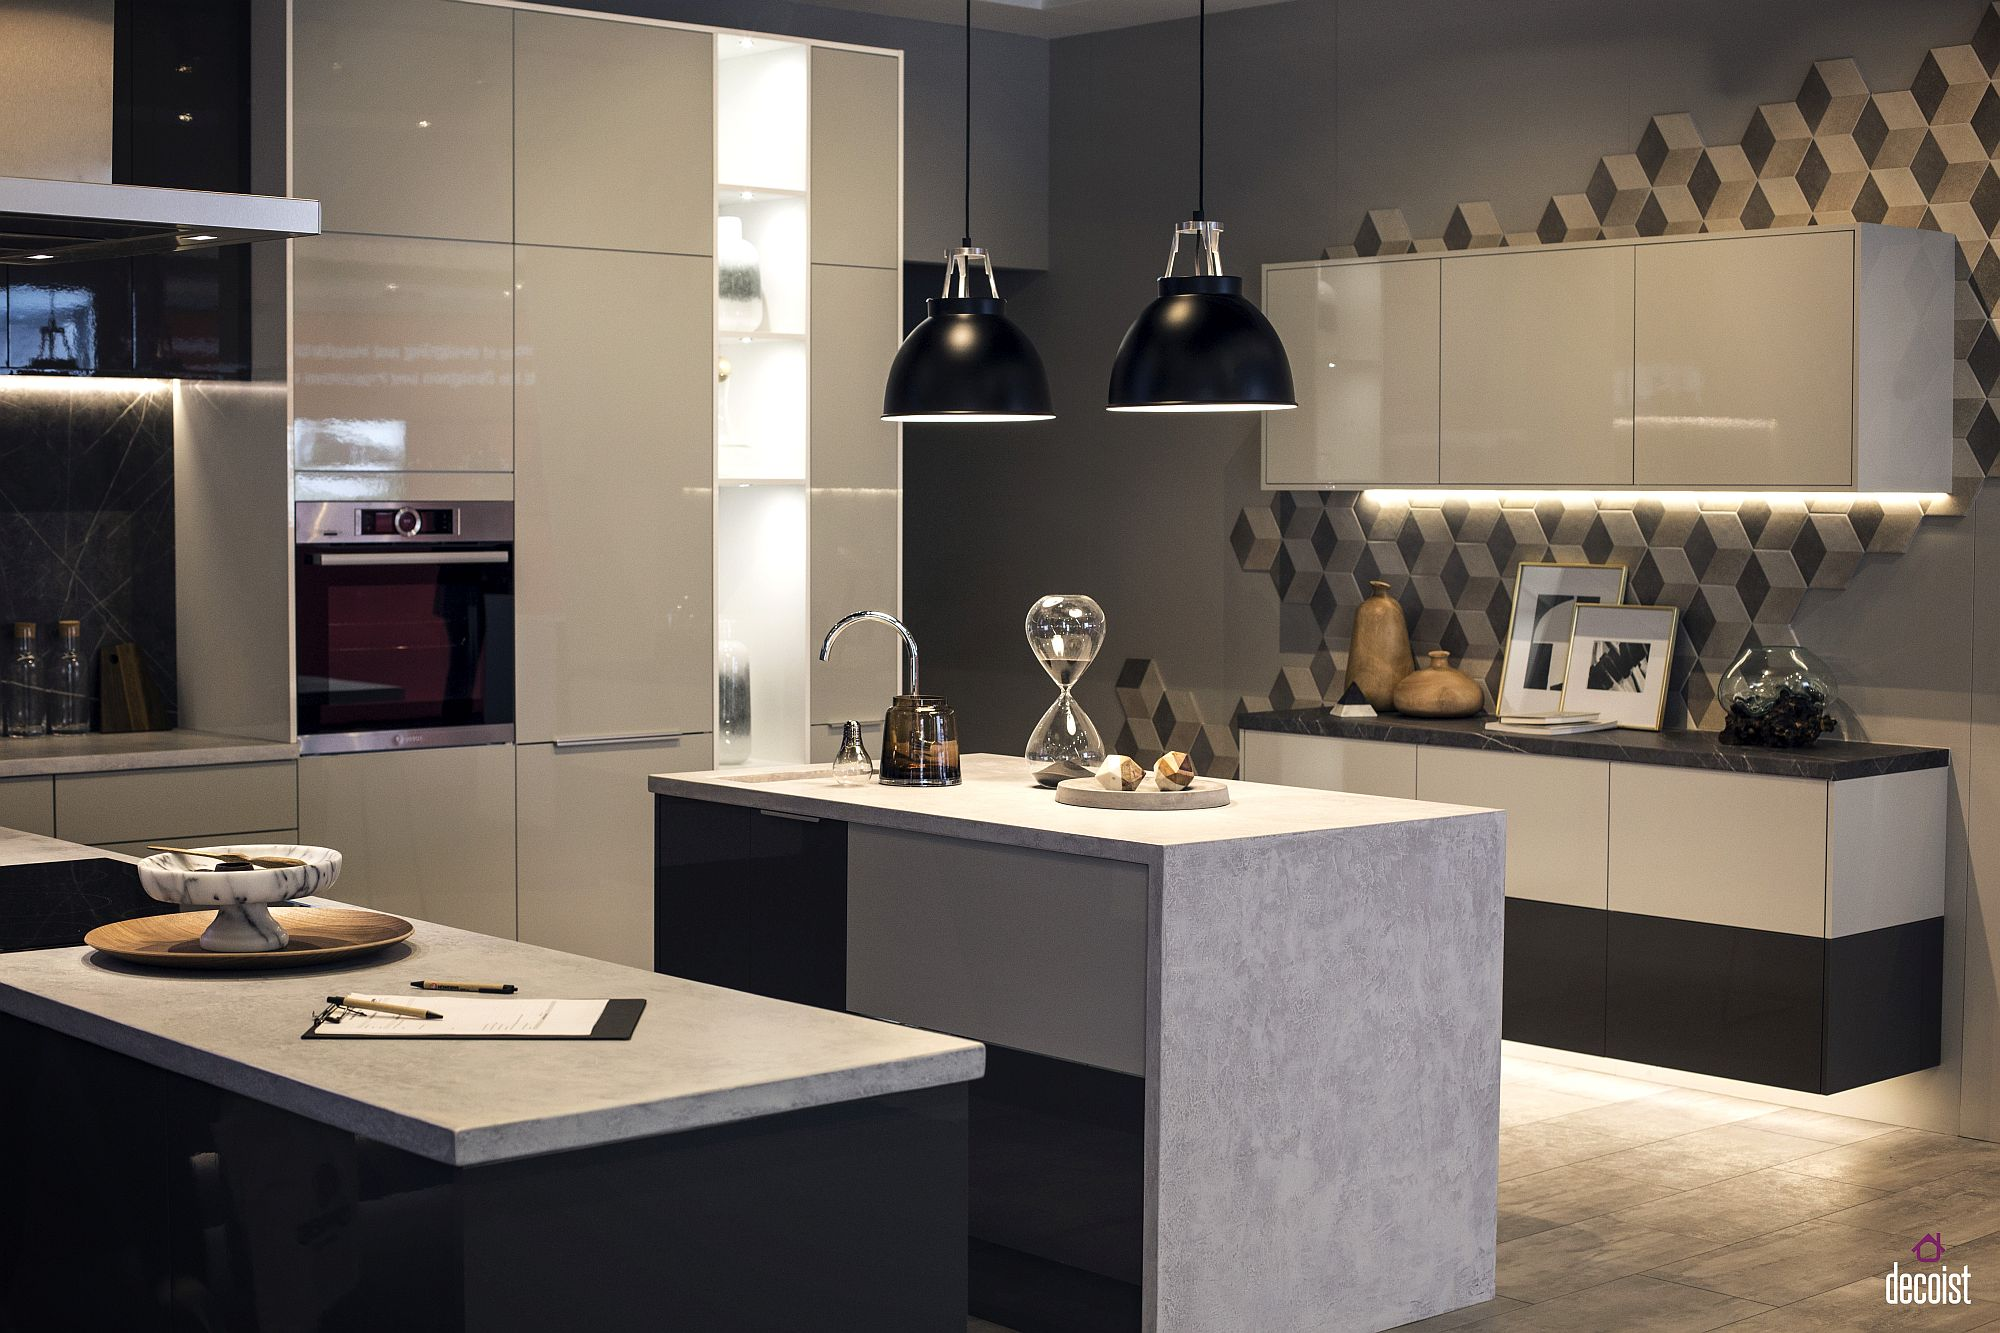 Smart under-cabinet LED strip lighting in kitchen is a functional choice